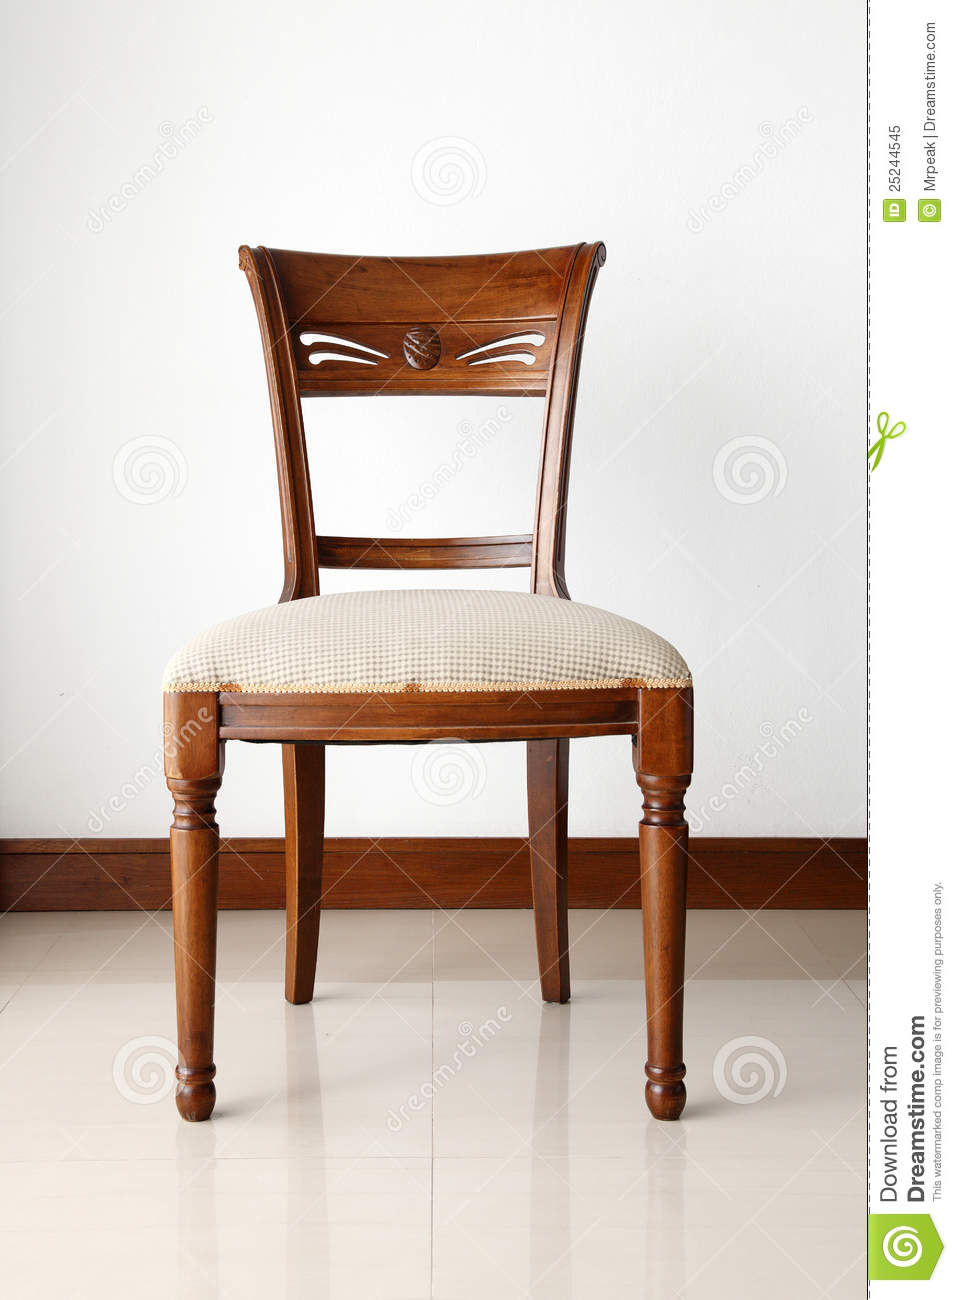 a wooden chair with soft cushion stock image image 25244545